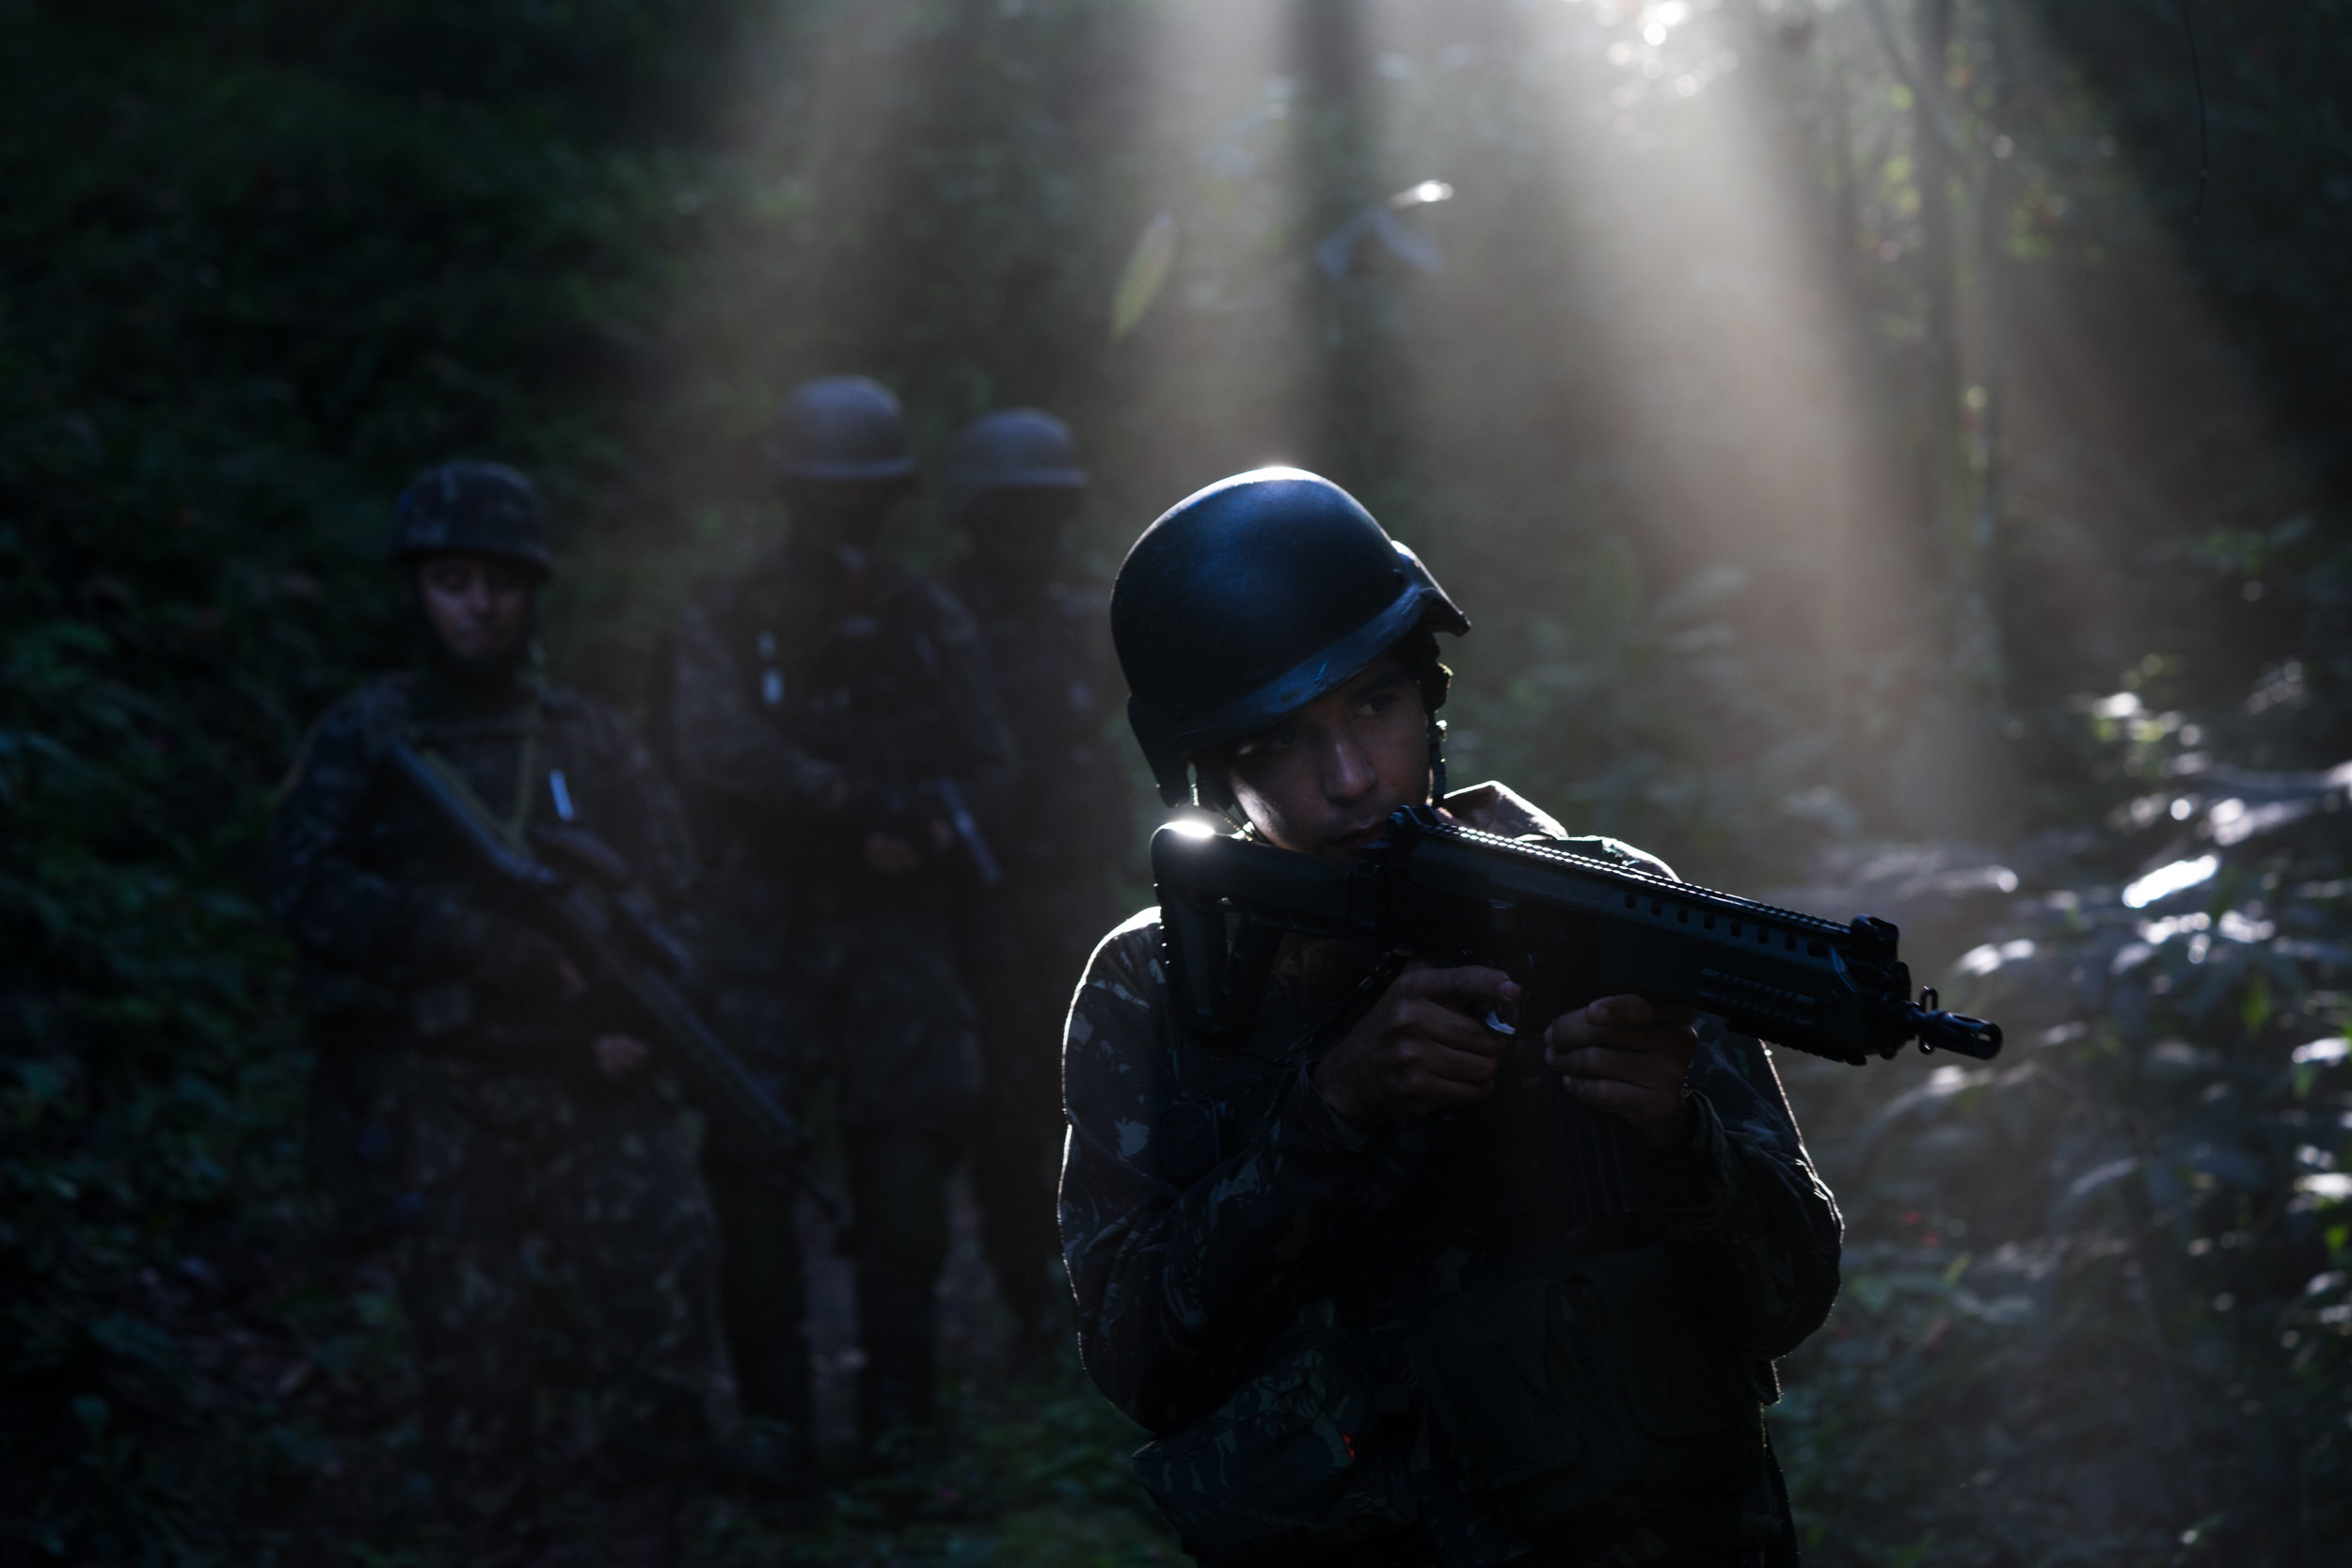 Brazilian Soldiers Search Rio's Jungles for Drug traffickers and weapons stashes.